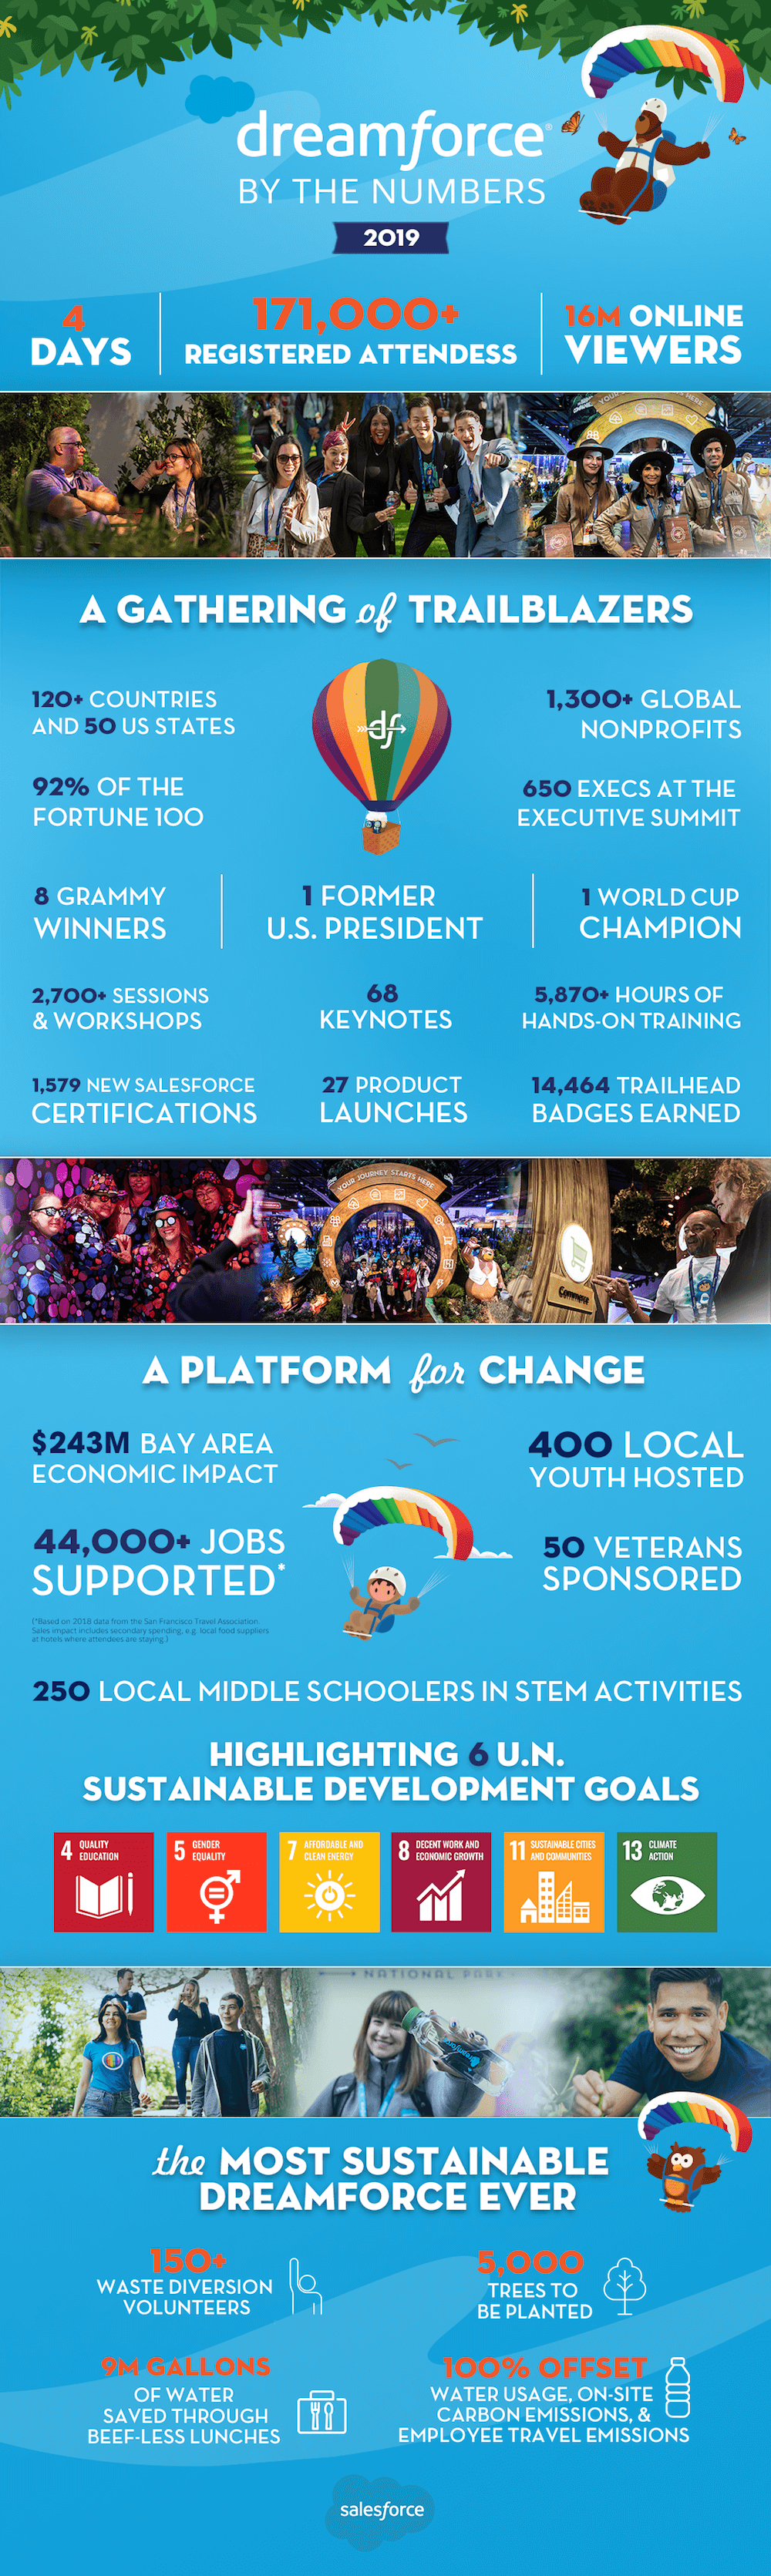 Dreamforce 2019 in Review: Key Facts and Figures